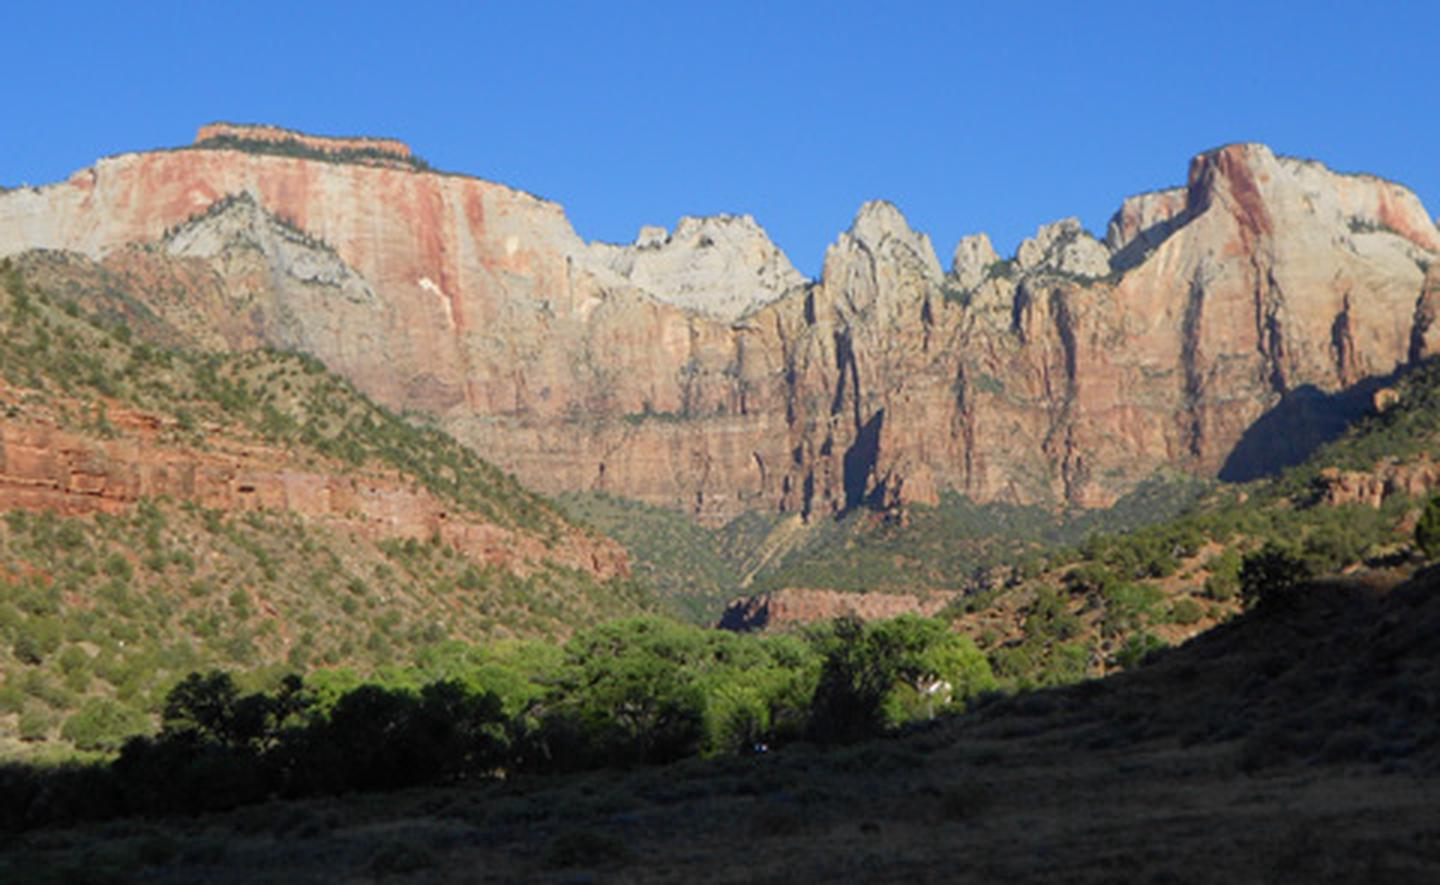 Preview photo of Zion National Park